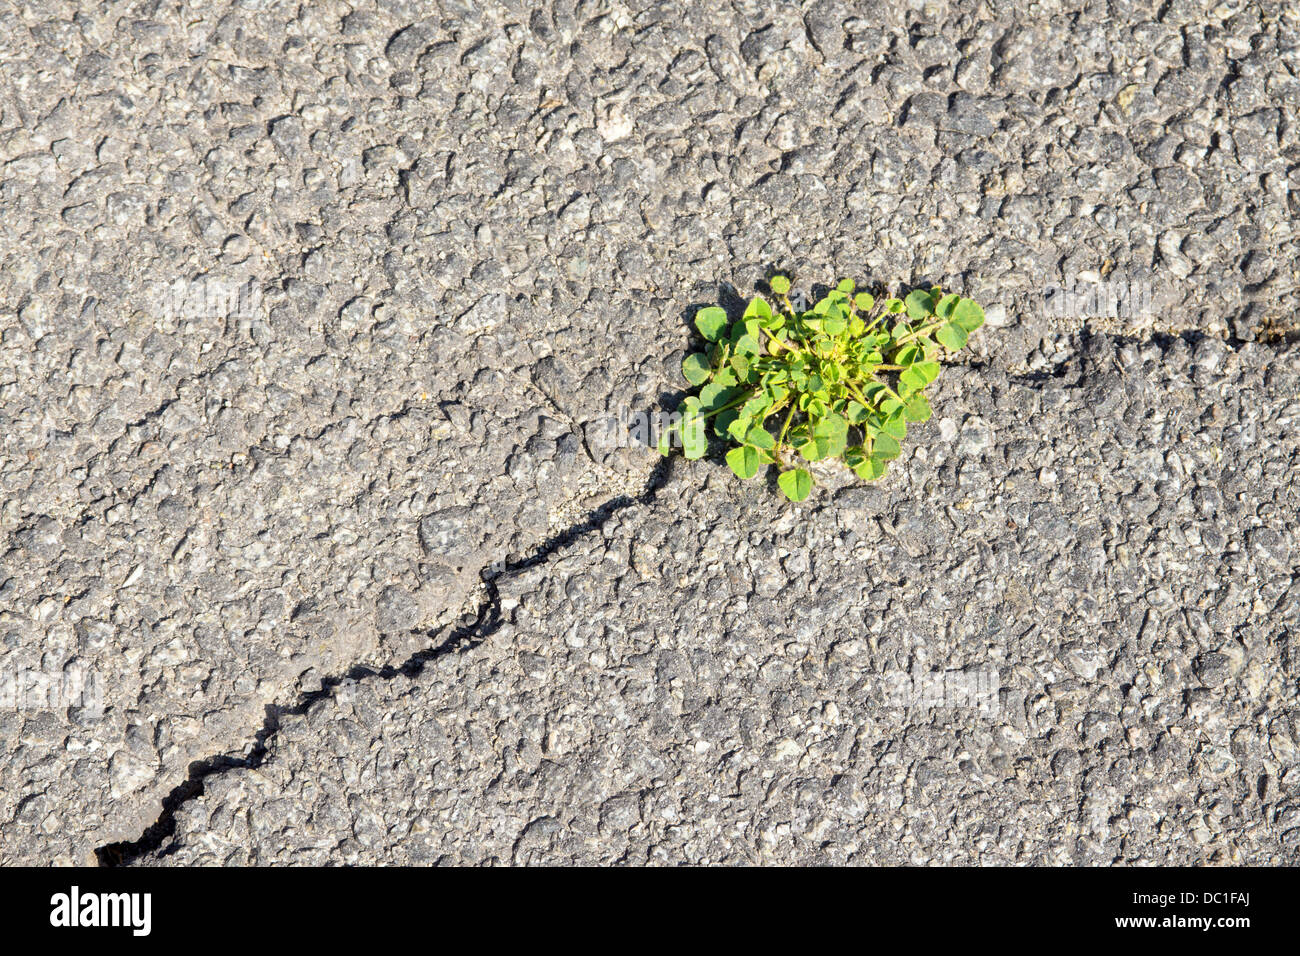 Green grass on fracture of grey asphalt. Concept of new life and overcome difficulties and problems. - Stock Image